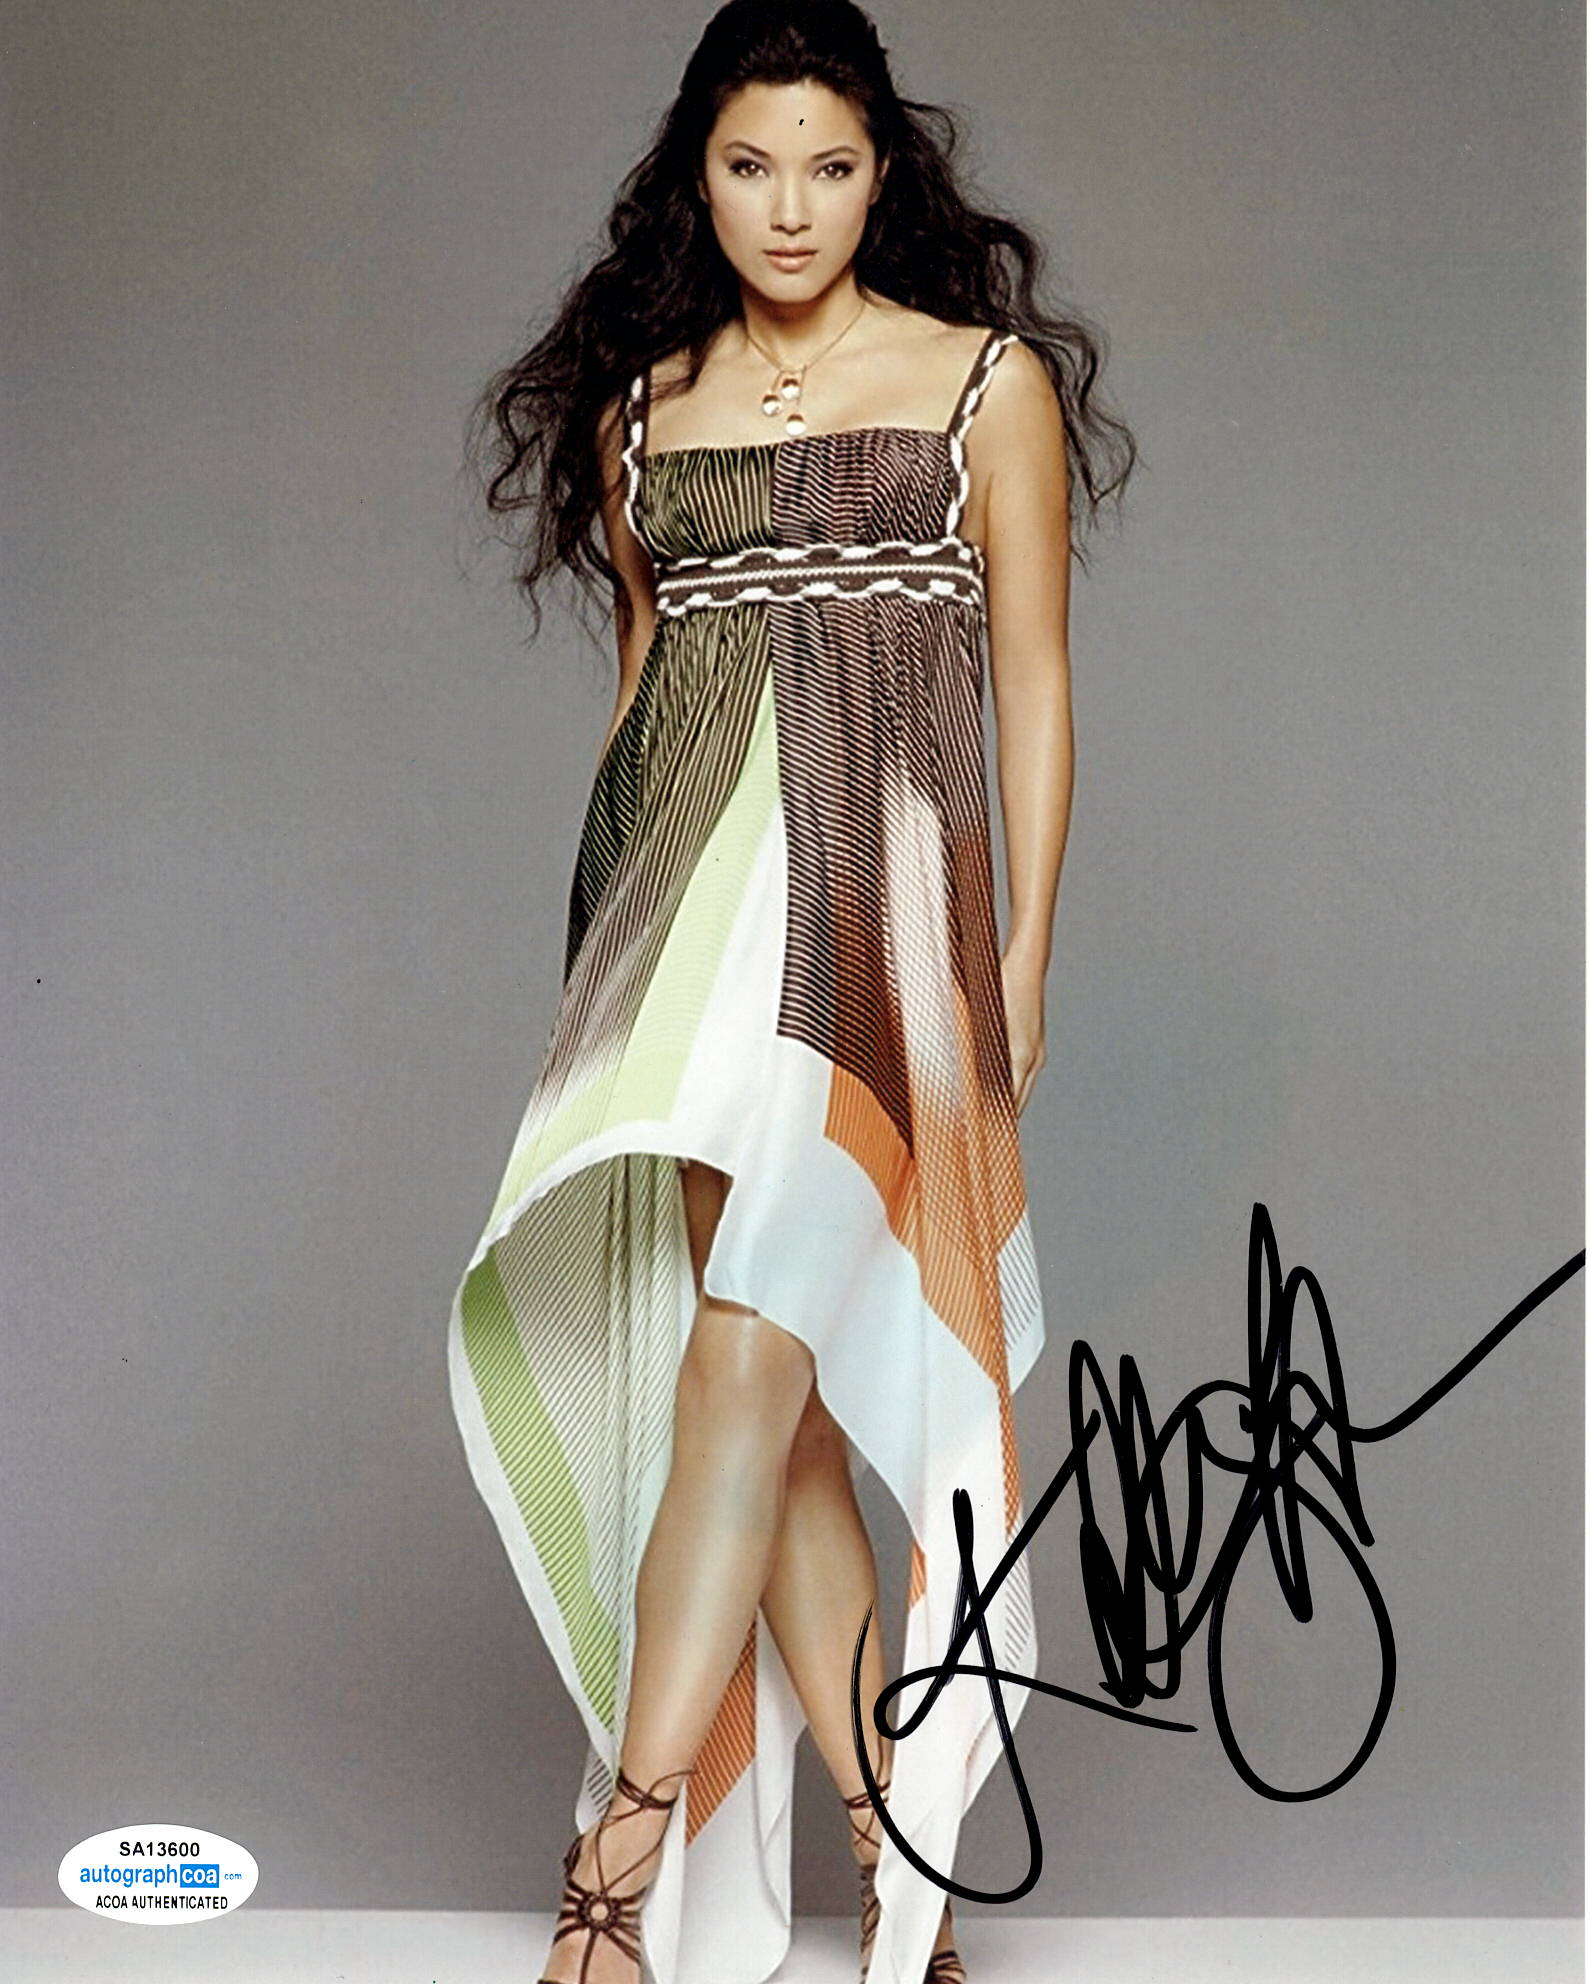 Kelly Hu X-Men Sexy Signed Autograph 8x10 Photo - Outlaw Hobbies Authentic Autographs